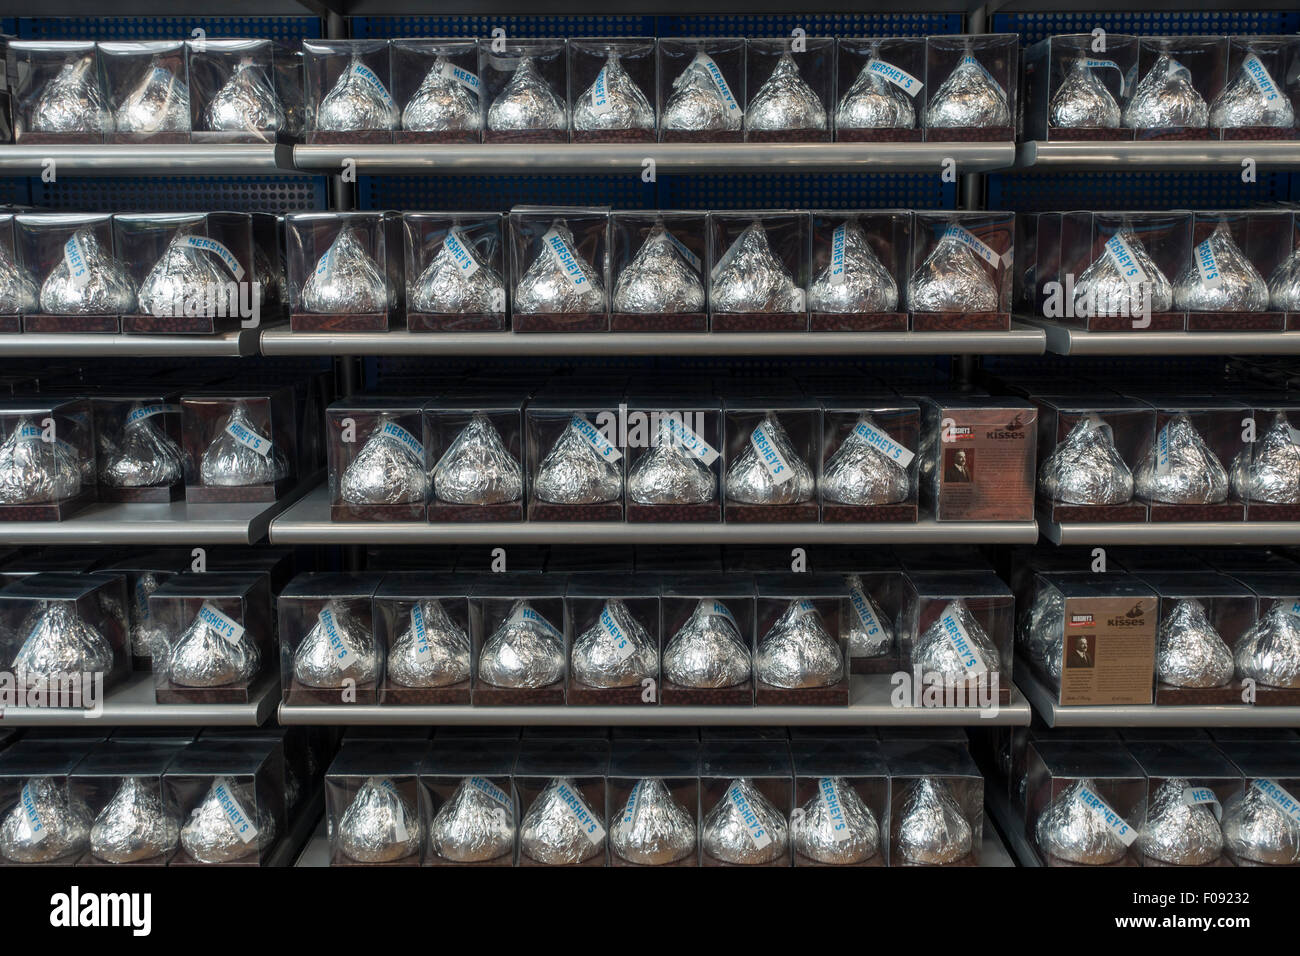 Hershey Chocolate World Stock Photos & Hershey Chocolate World ...